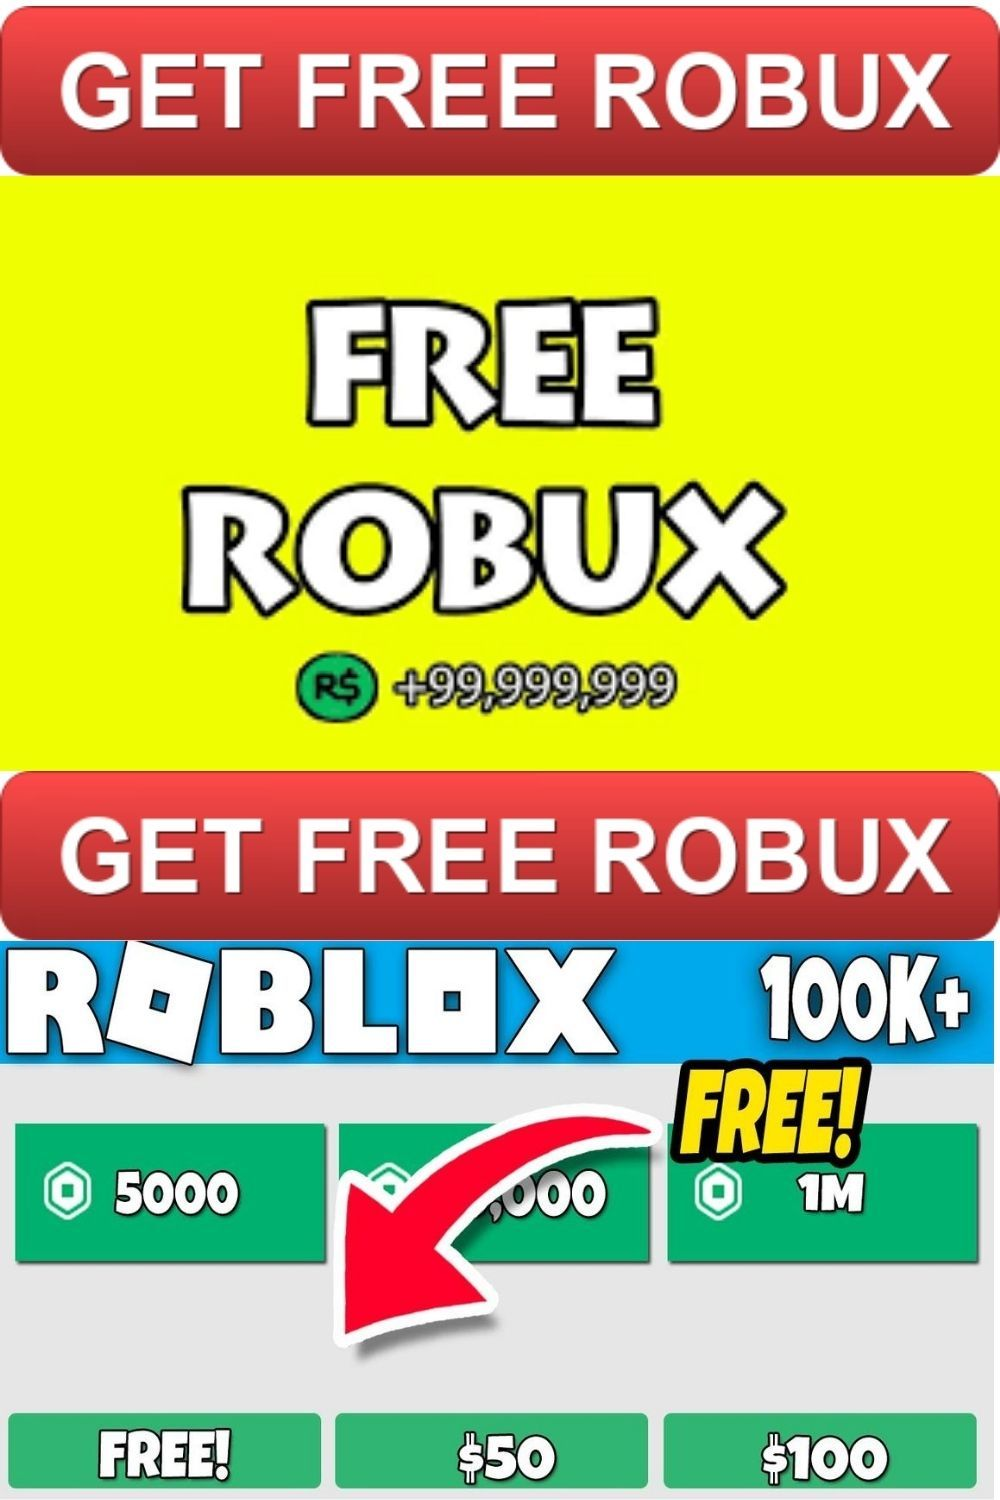 Easy Free Robux How To Get Free Robux Easy No Download In 2020 Roblox Generation How To Get